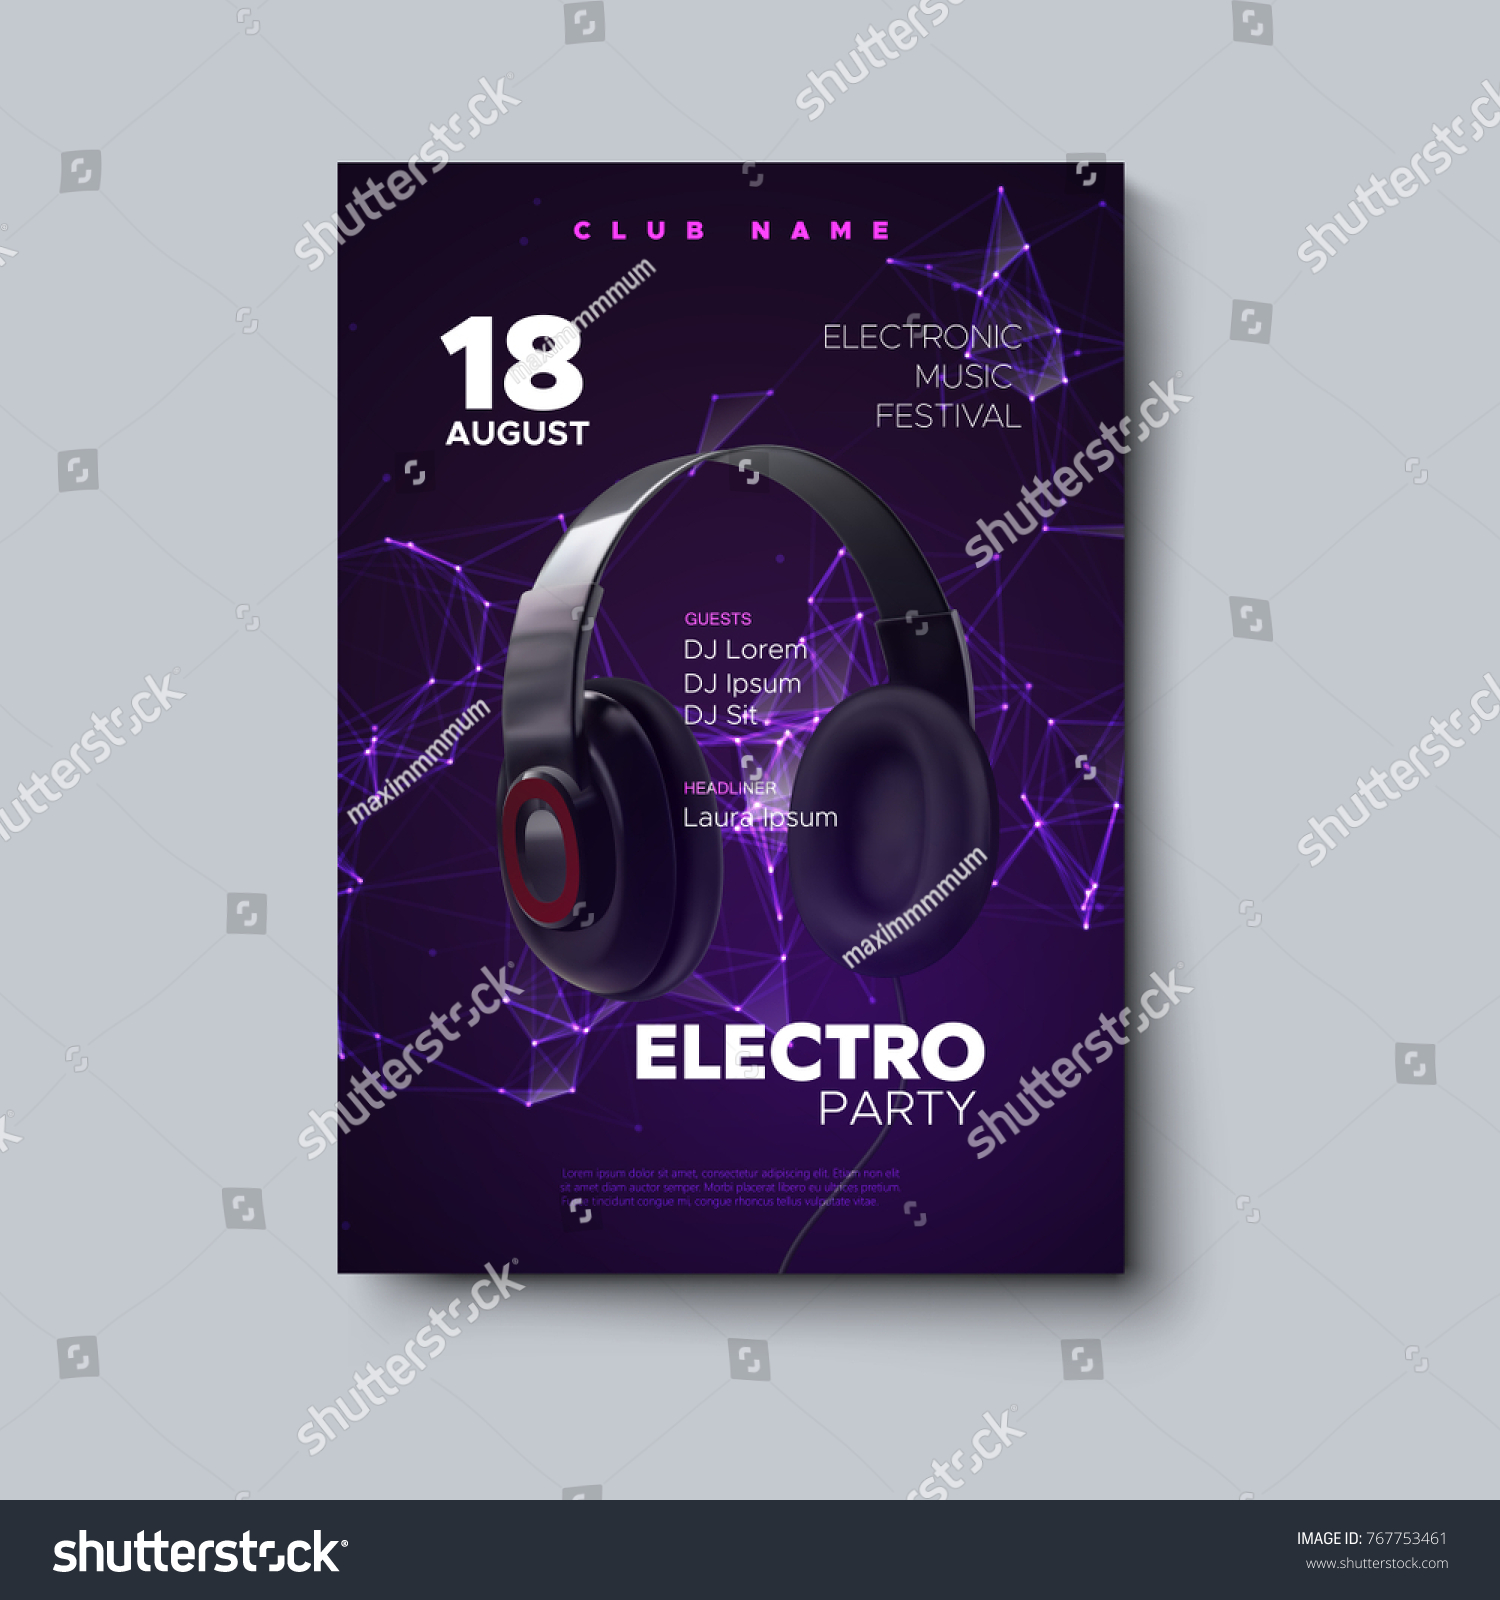 Electro Party Invitation Poster Electronic Music Stock Vector